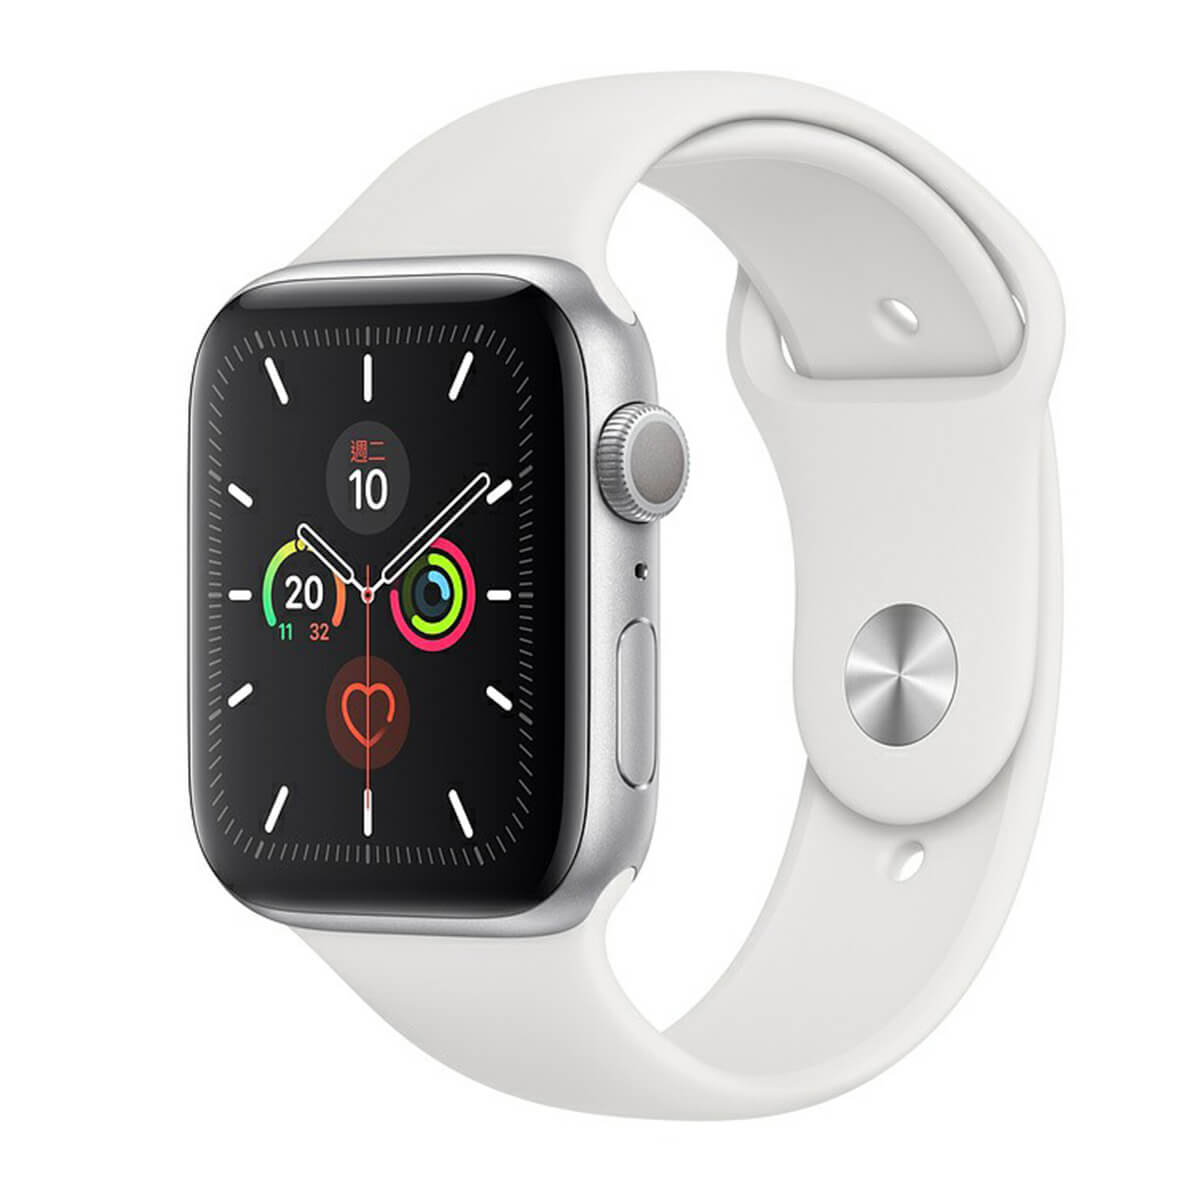 Apple Watch Series 5 (44mm) GPS版